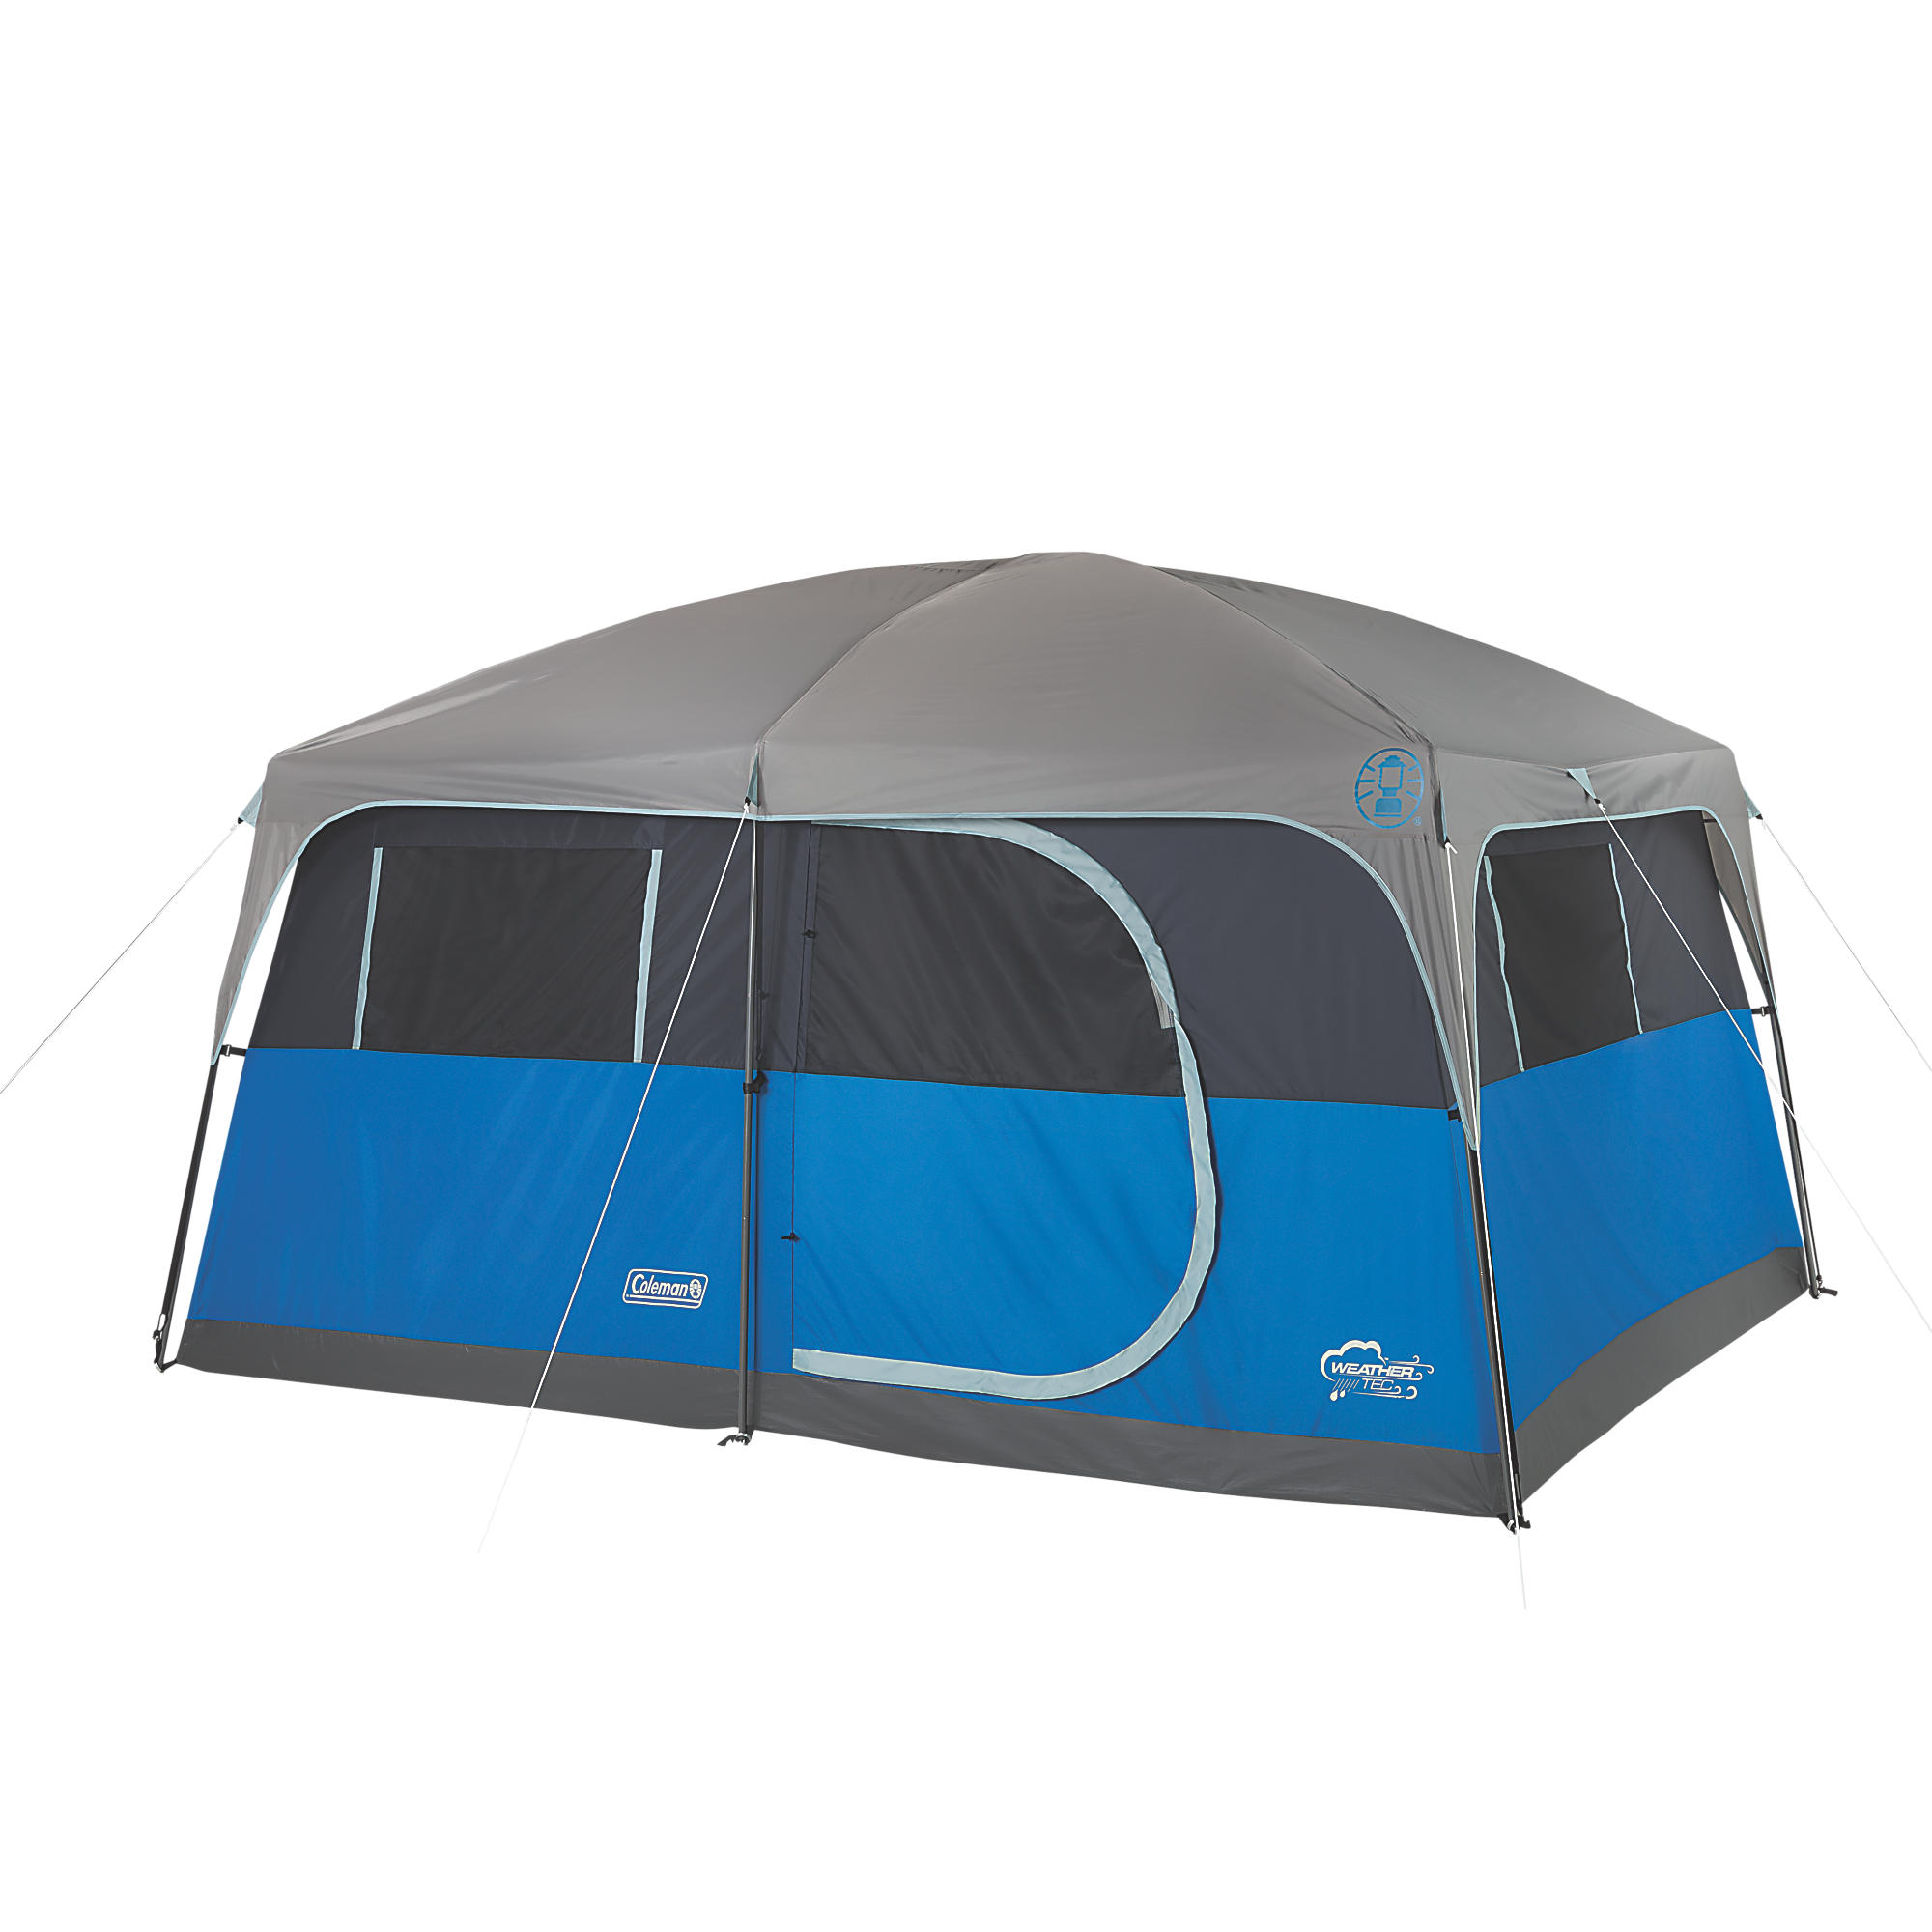 Ozark Trail 16 X 3 Bedroom Instant Tent You  sc 1 st  Best Tent 2017 & Coleman Three Room Cabin Tent - Best Tent 2017